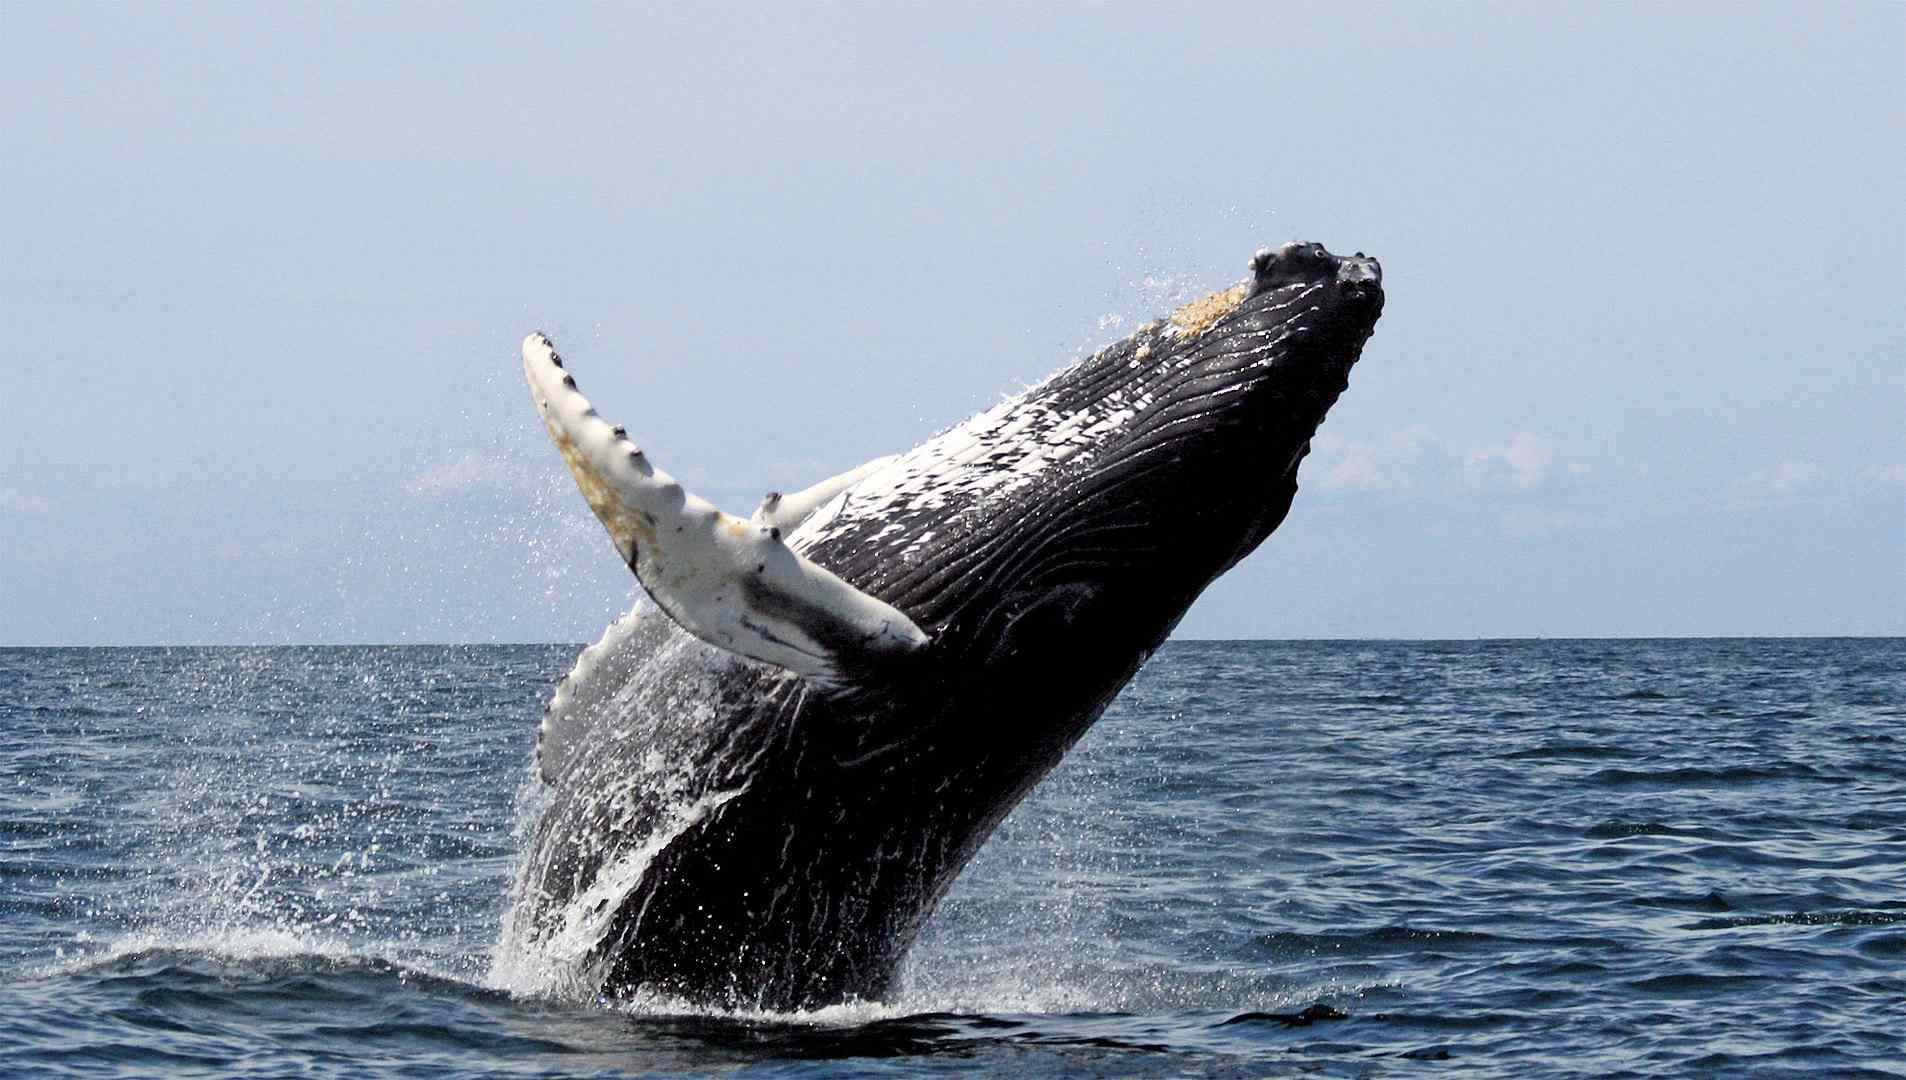 Humpback whale jumping out of the water.